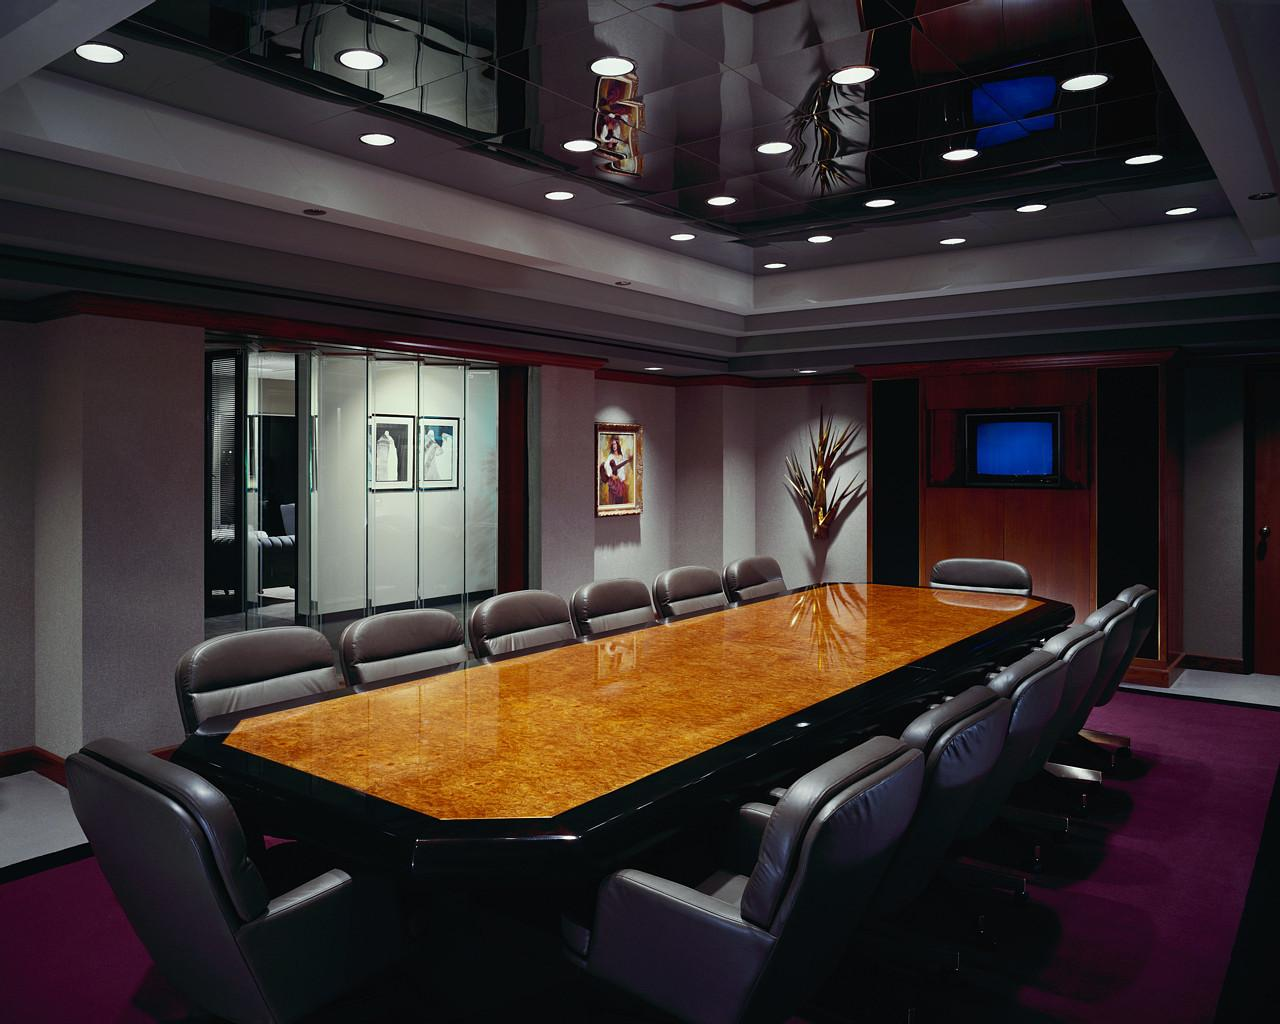 Benefits Renting Meeting Room Startup Daily